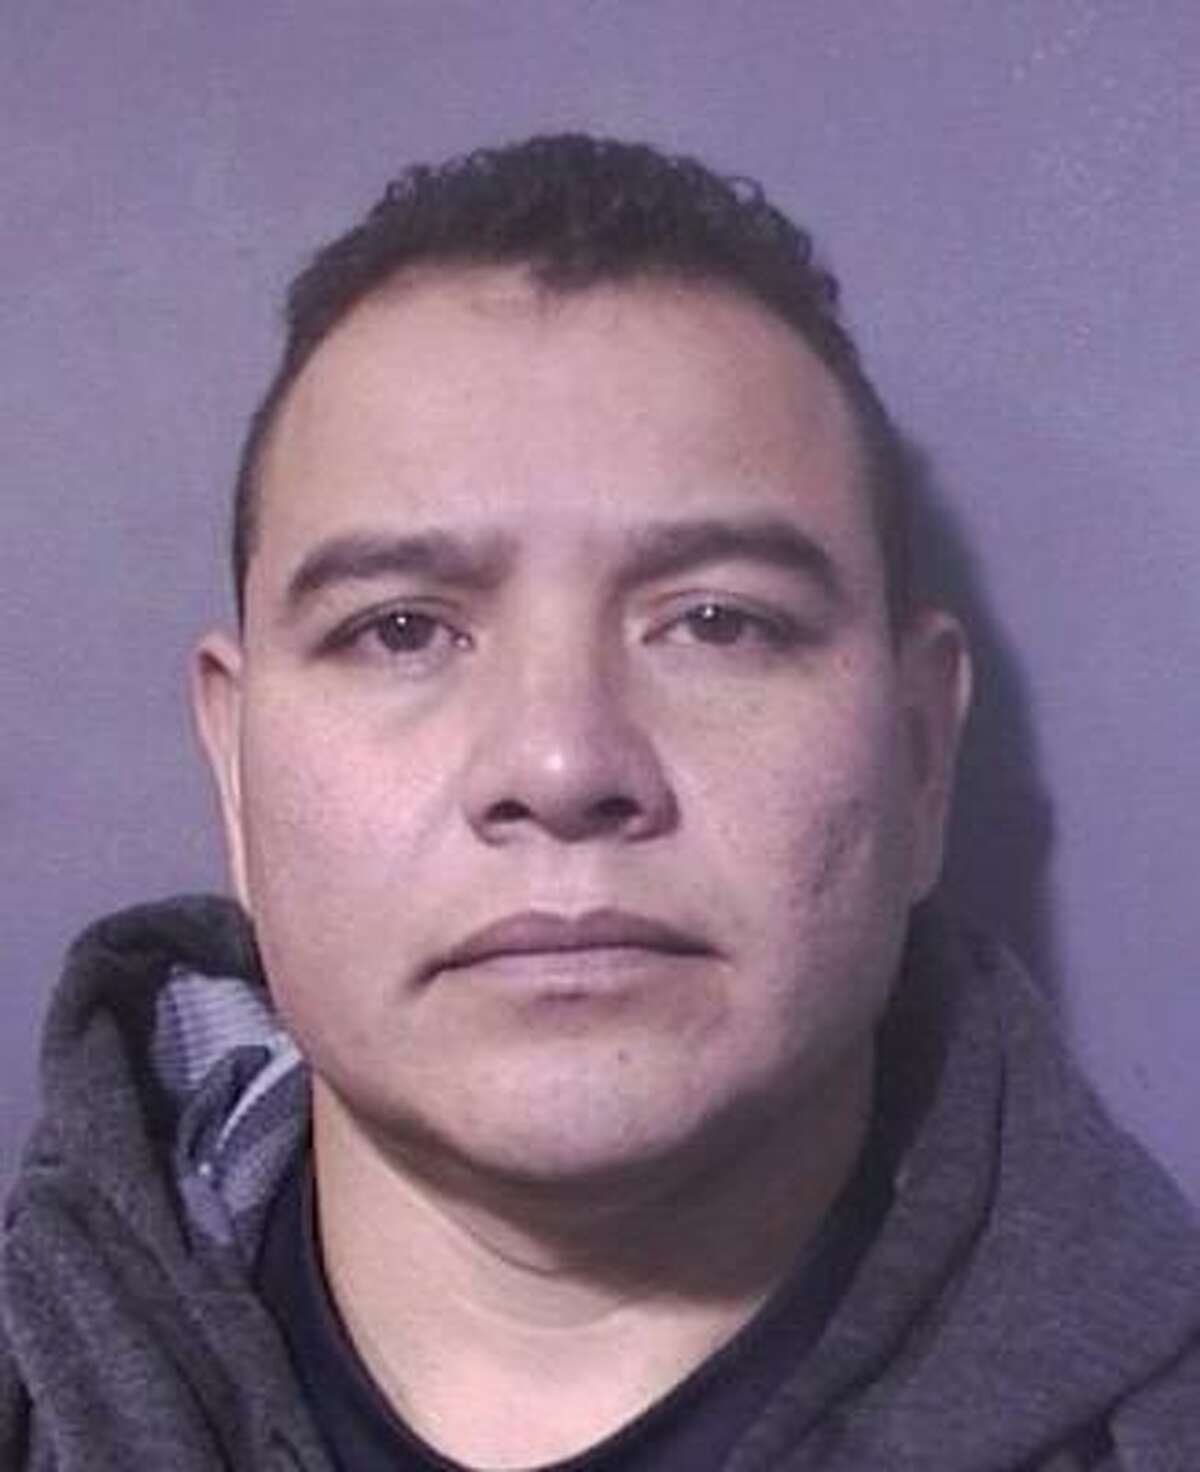 Saul Noe Trejo, 37, was arrested on a charge of aggravated promotion of prostitution last week.